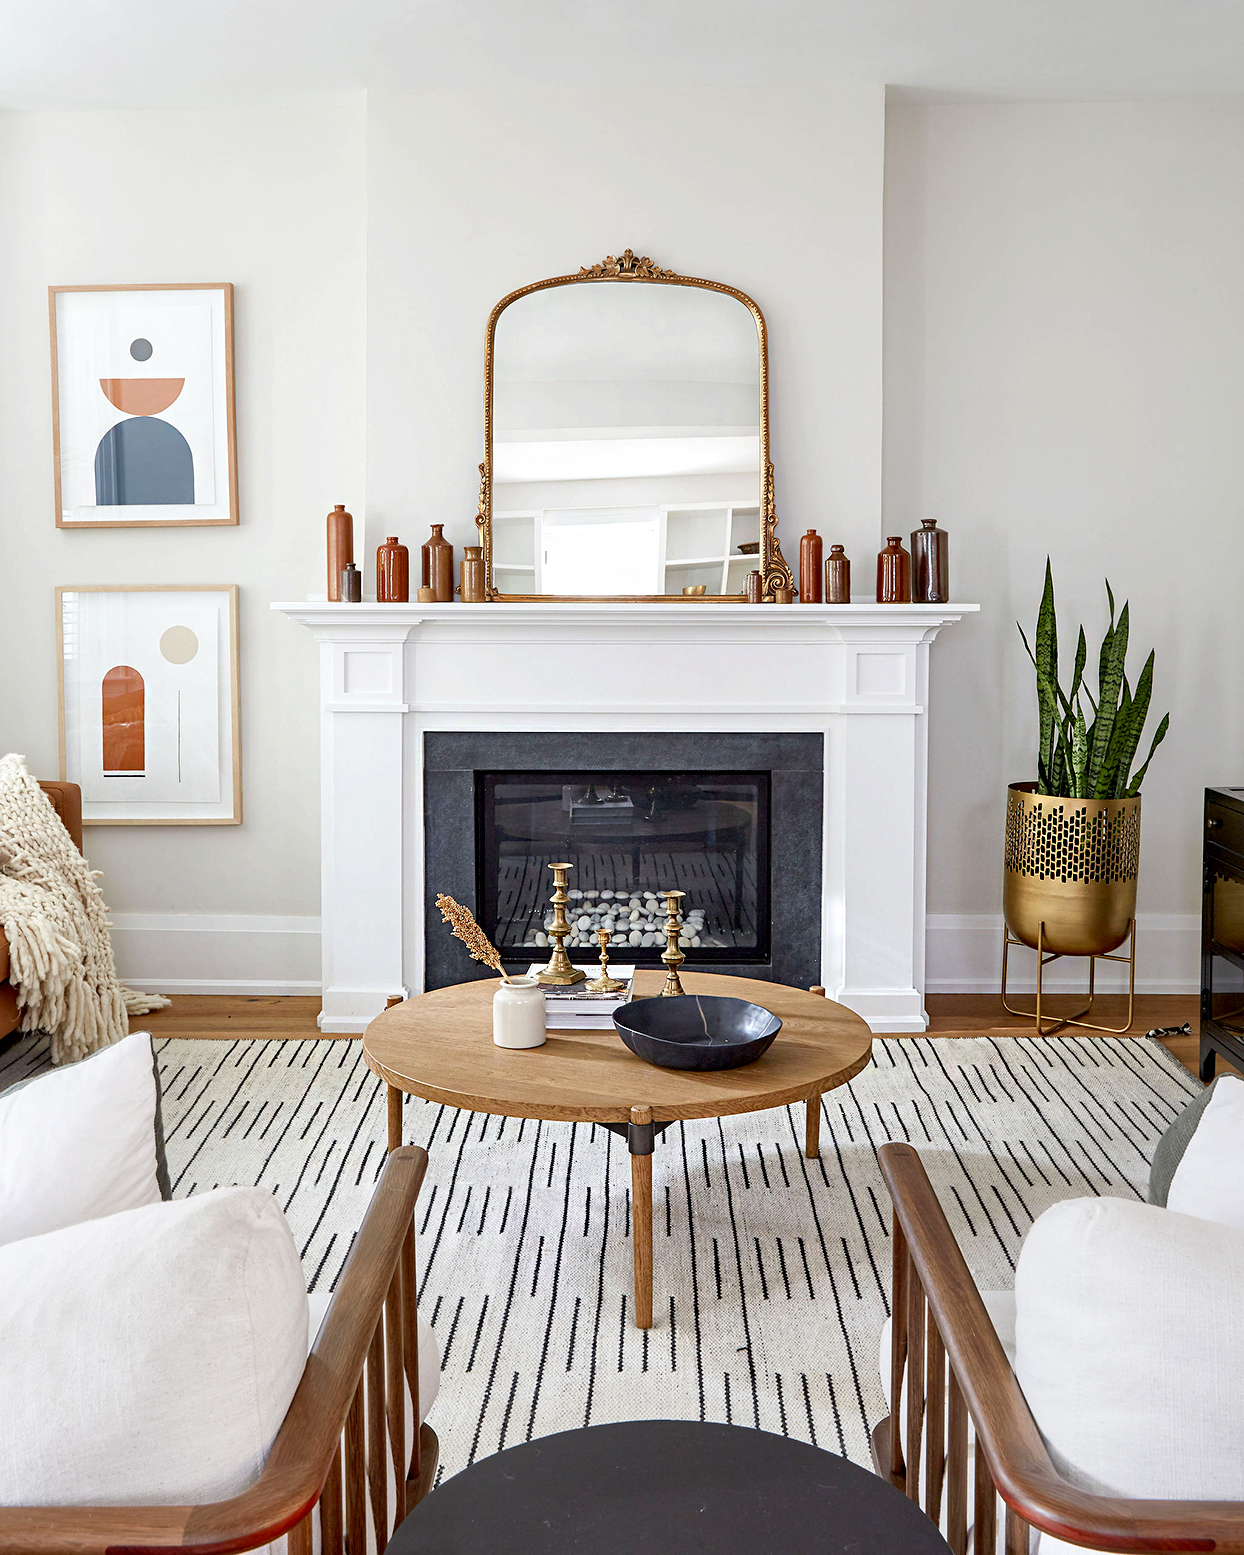 Fireplace with white mantel and large mirror